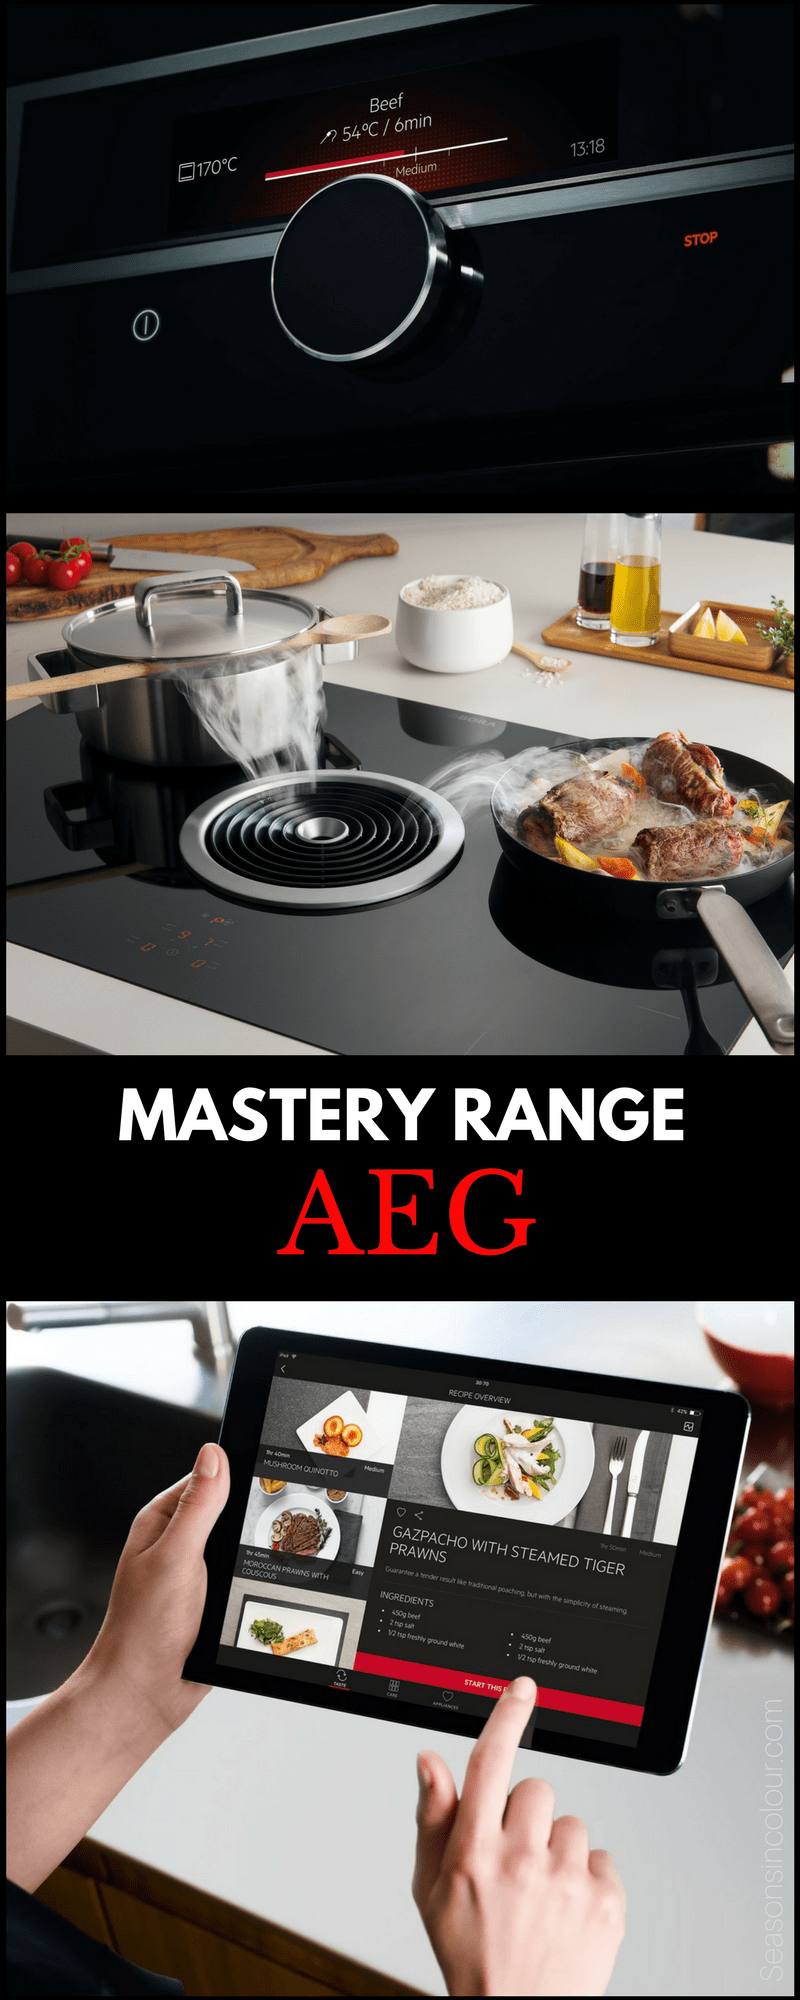 the AEG Mastery Range in kitchens, with extractor fan on the induction hob.